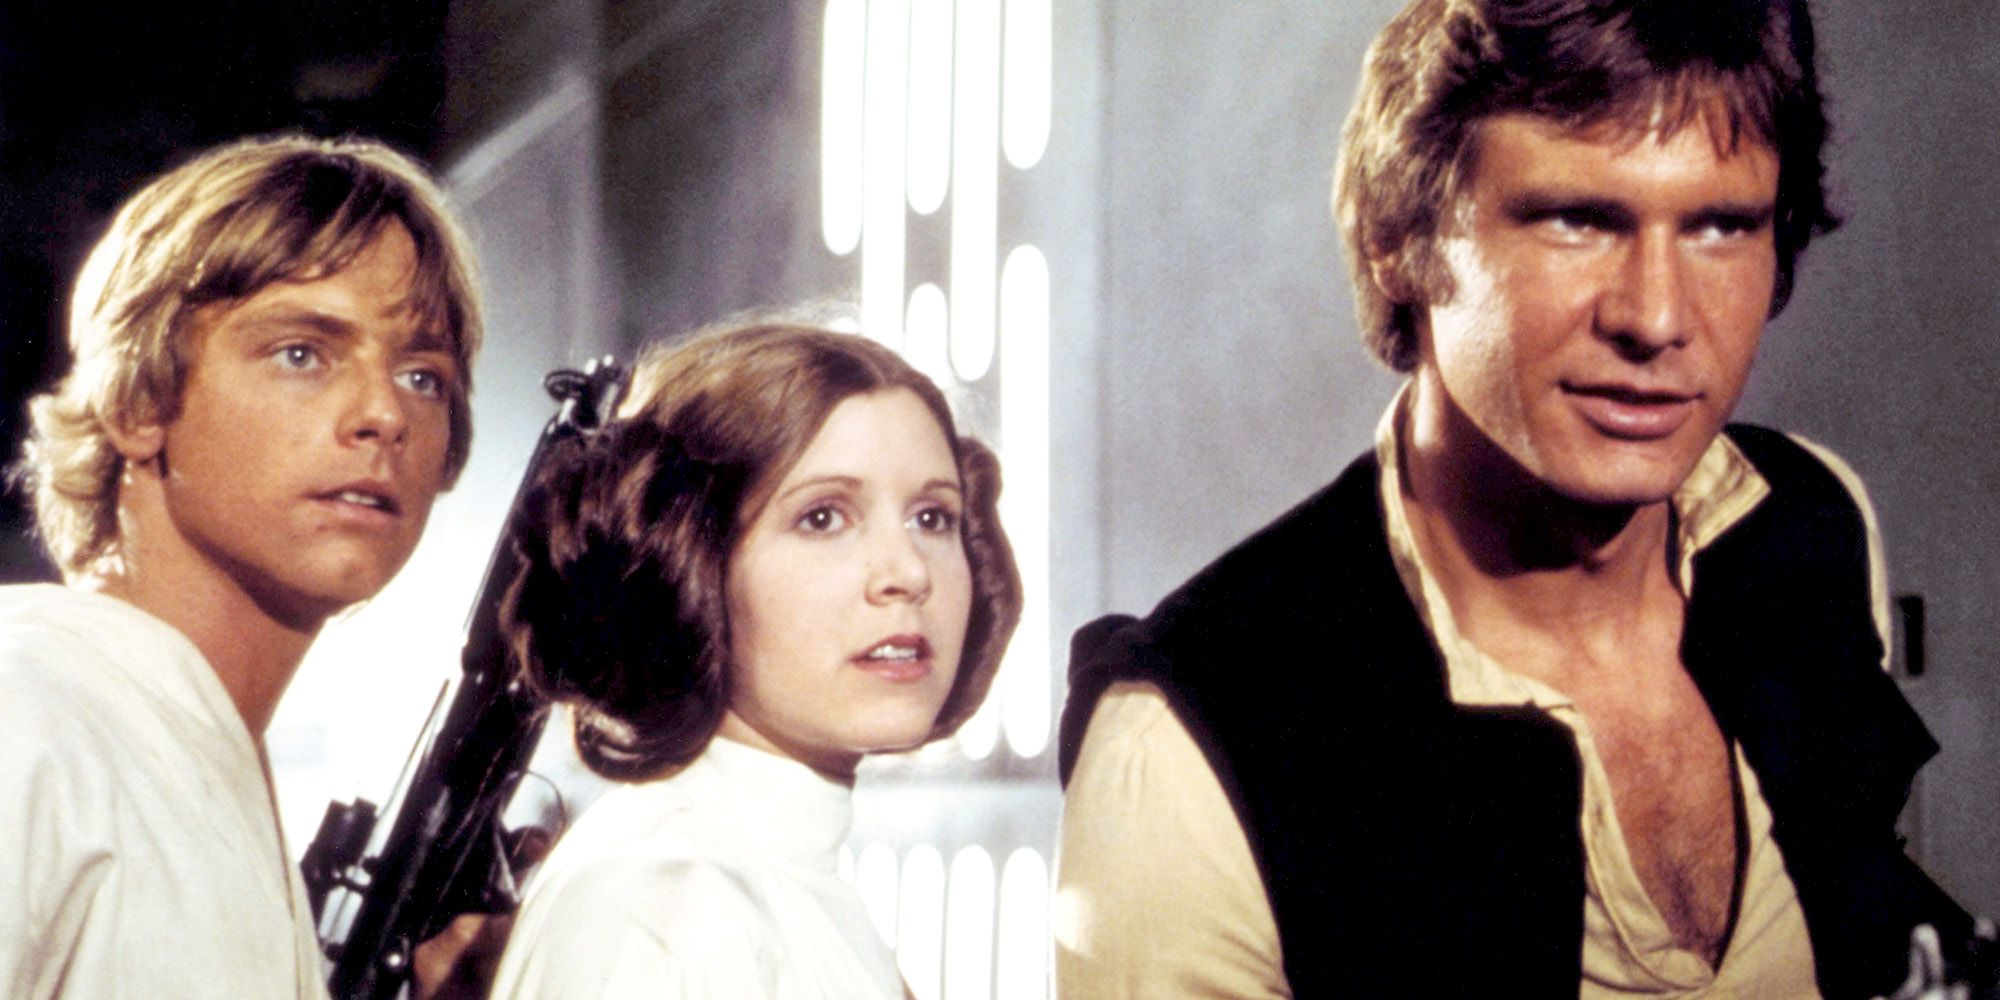 Carrie Fisher, Mark Hamill, And Harrison Ford Talk Their Star Wars Love Triangle In This Long Lost Empire Strikes Back Doc